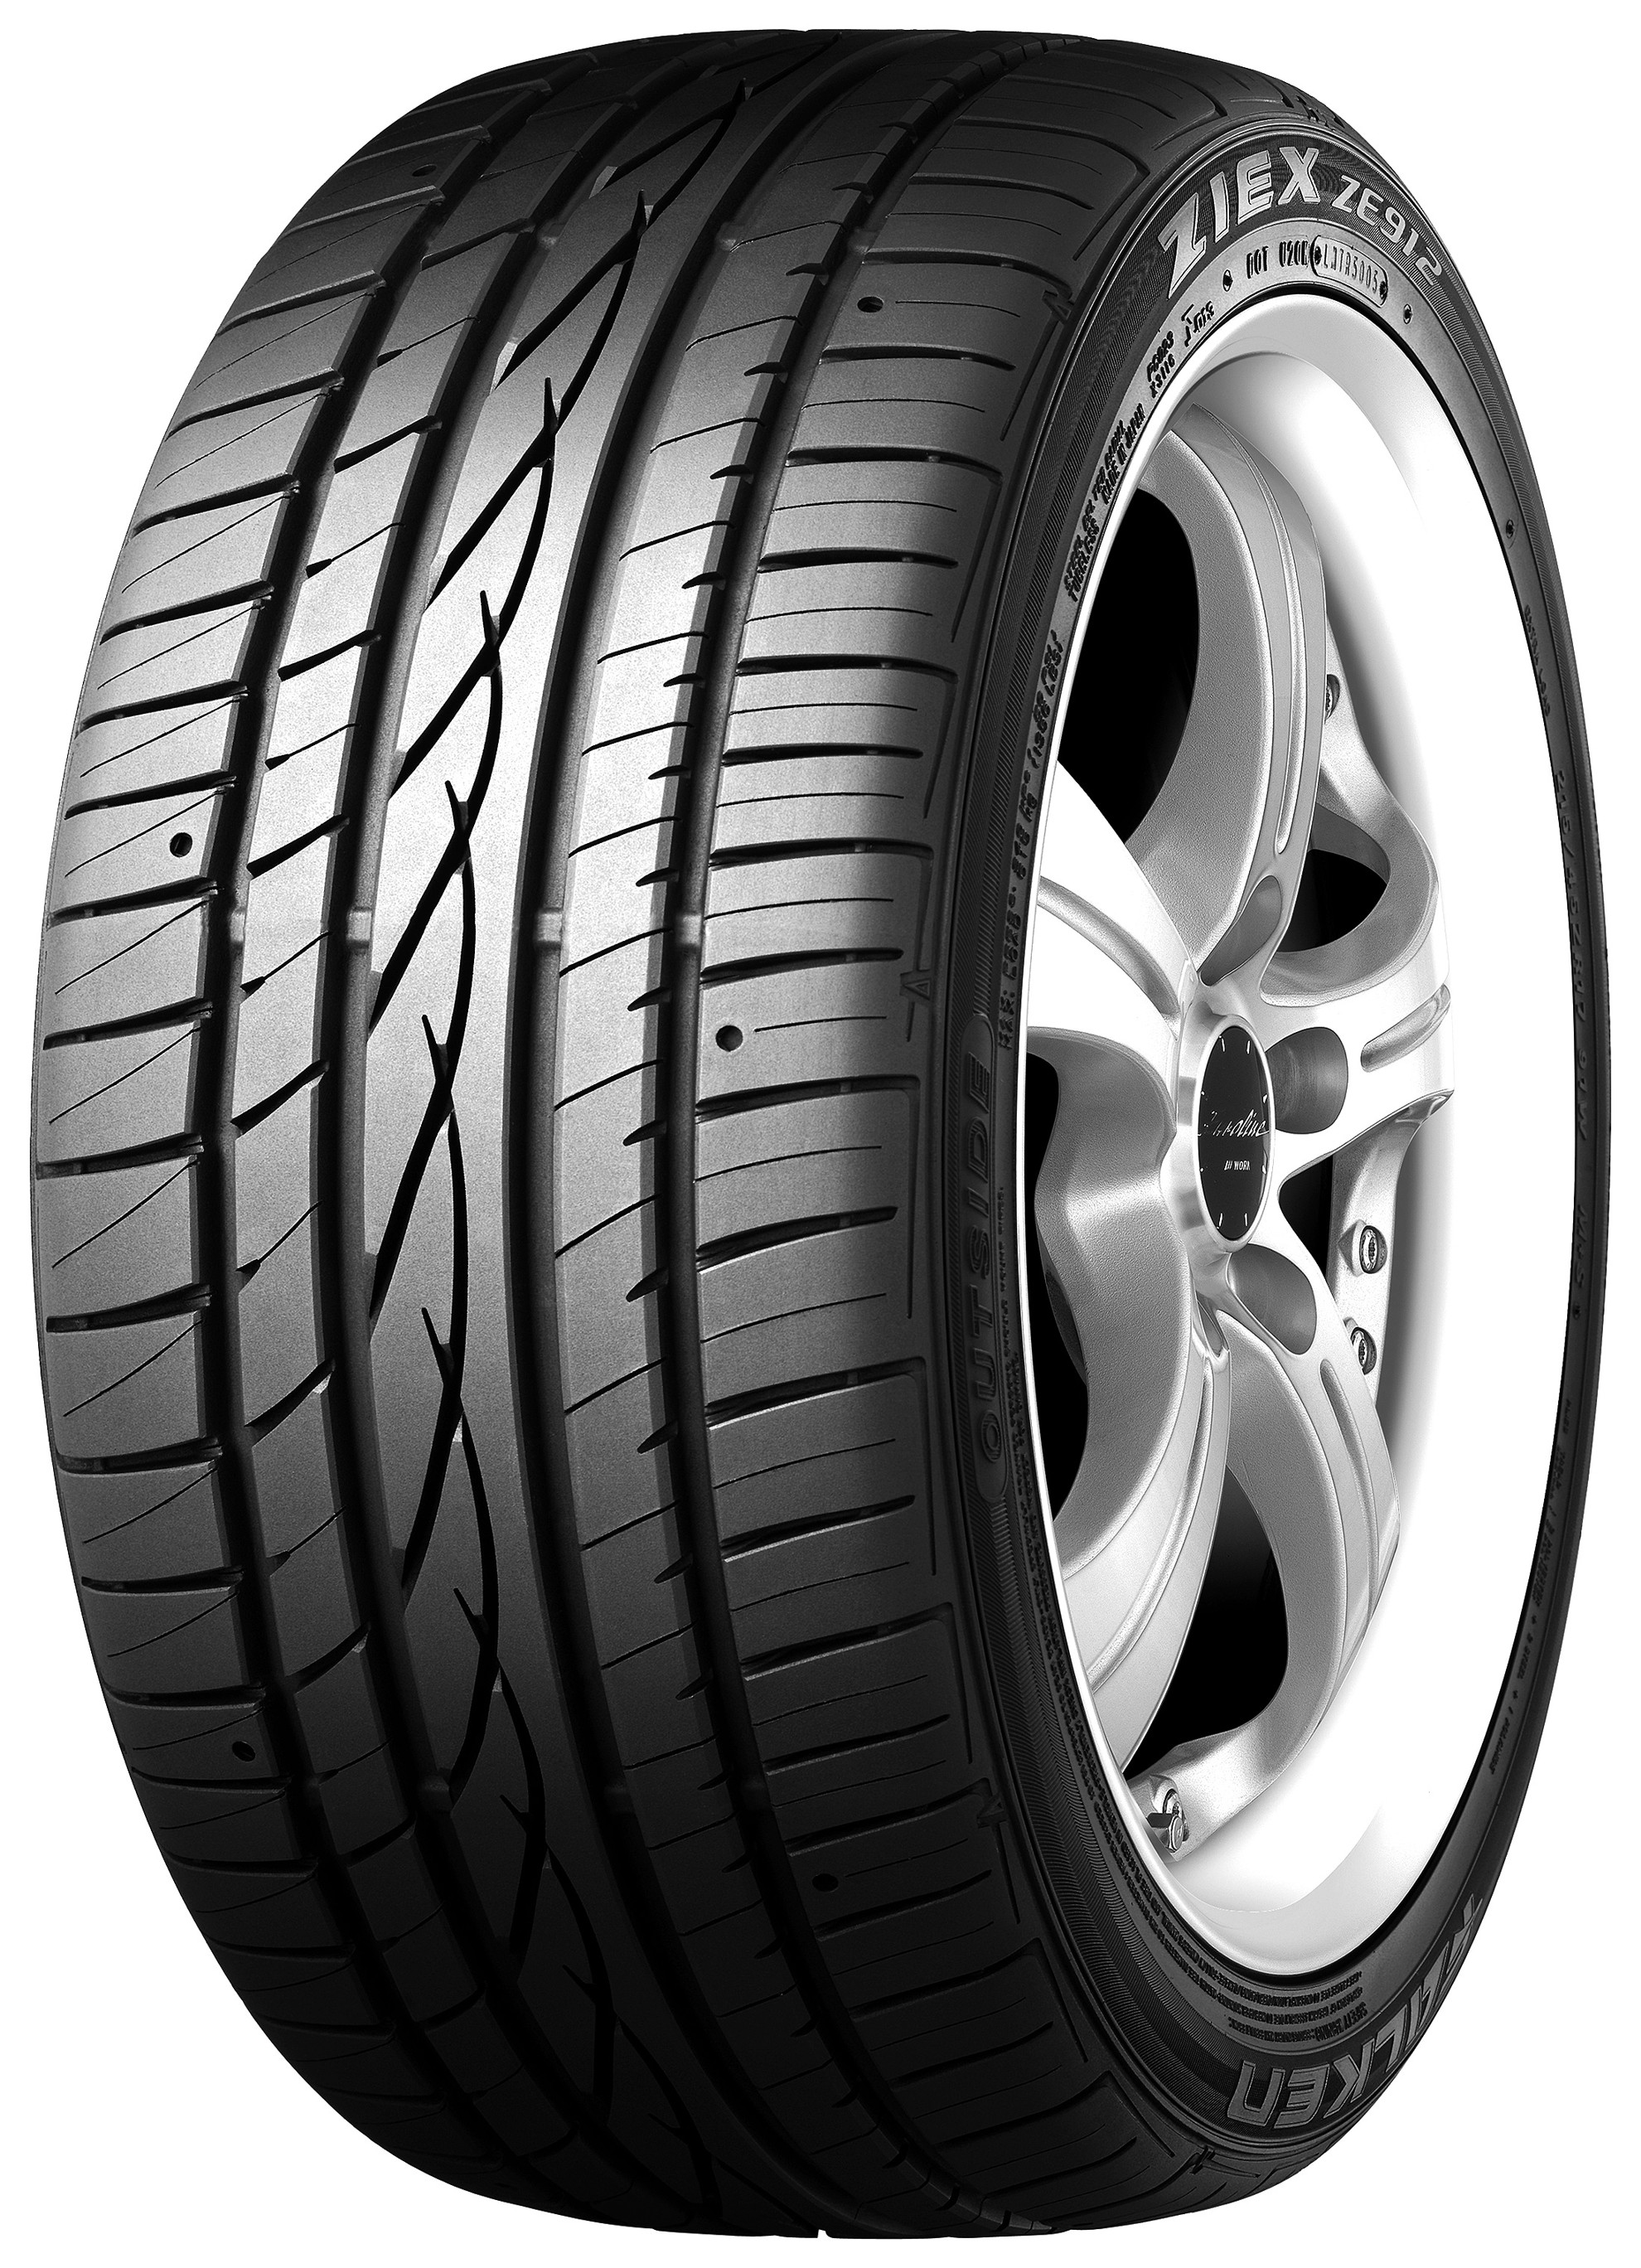 Falken Tyres works with car clubs to improve grass-root ...